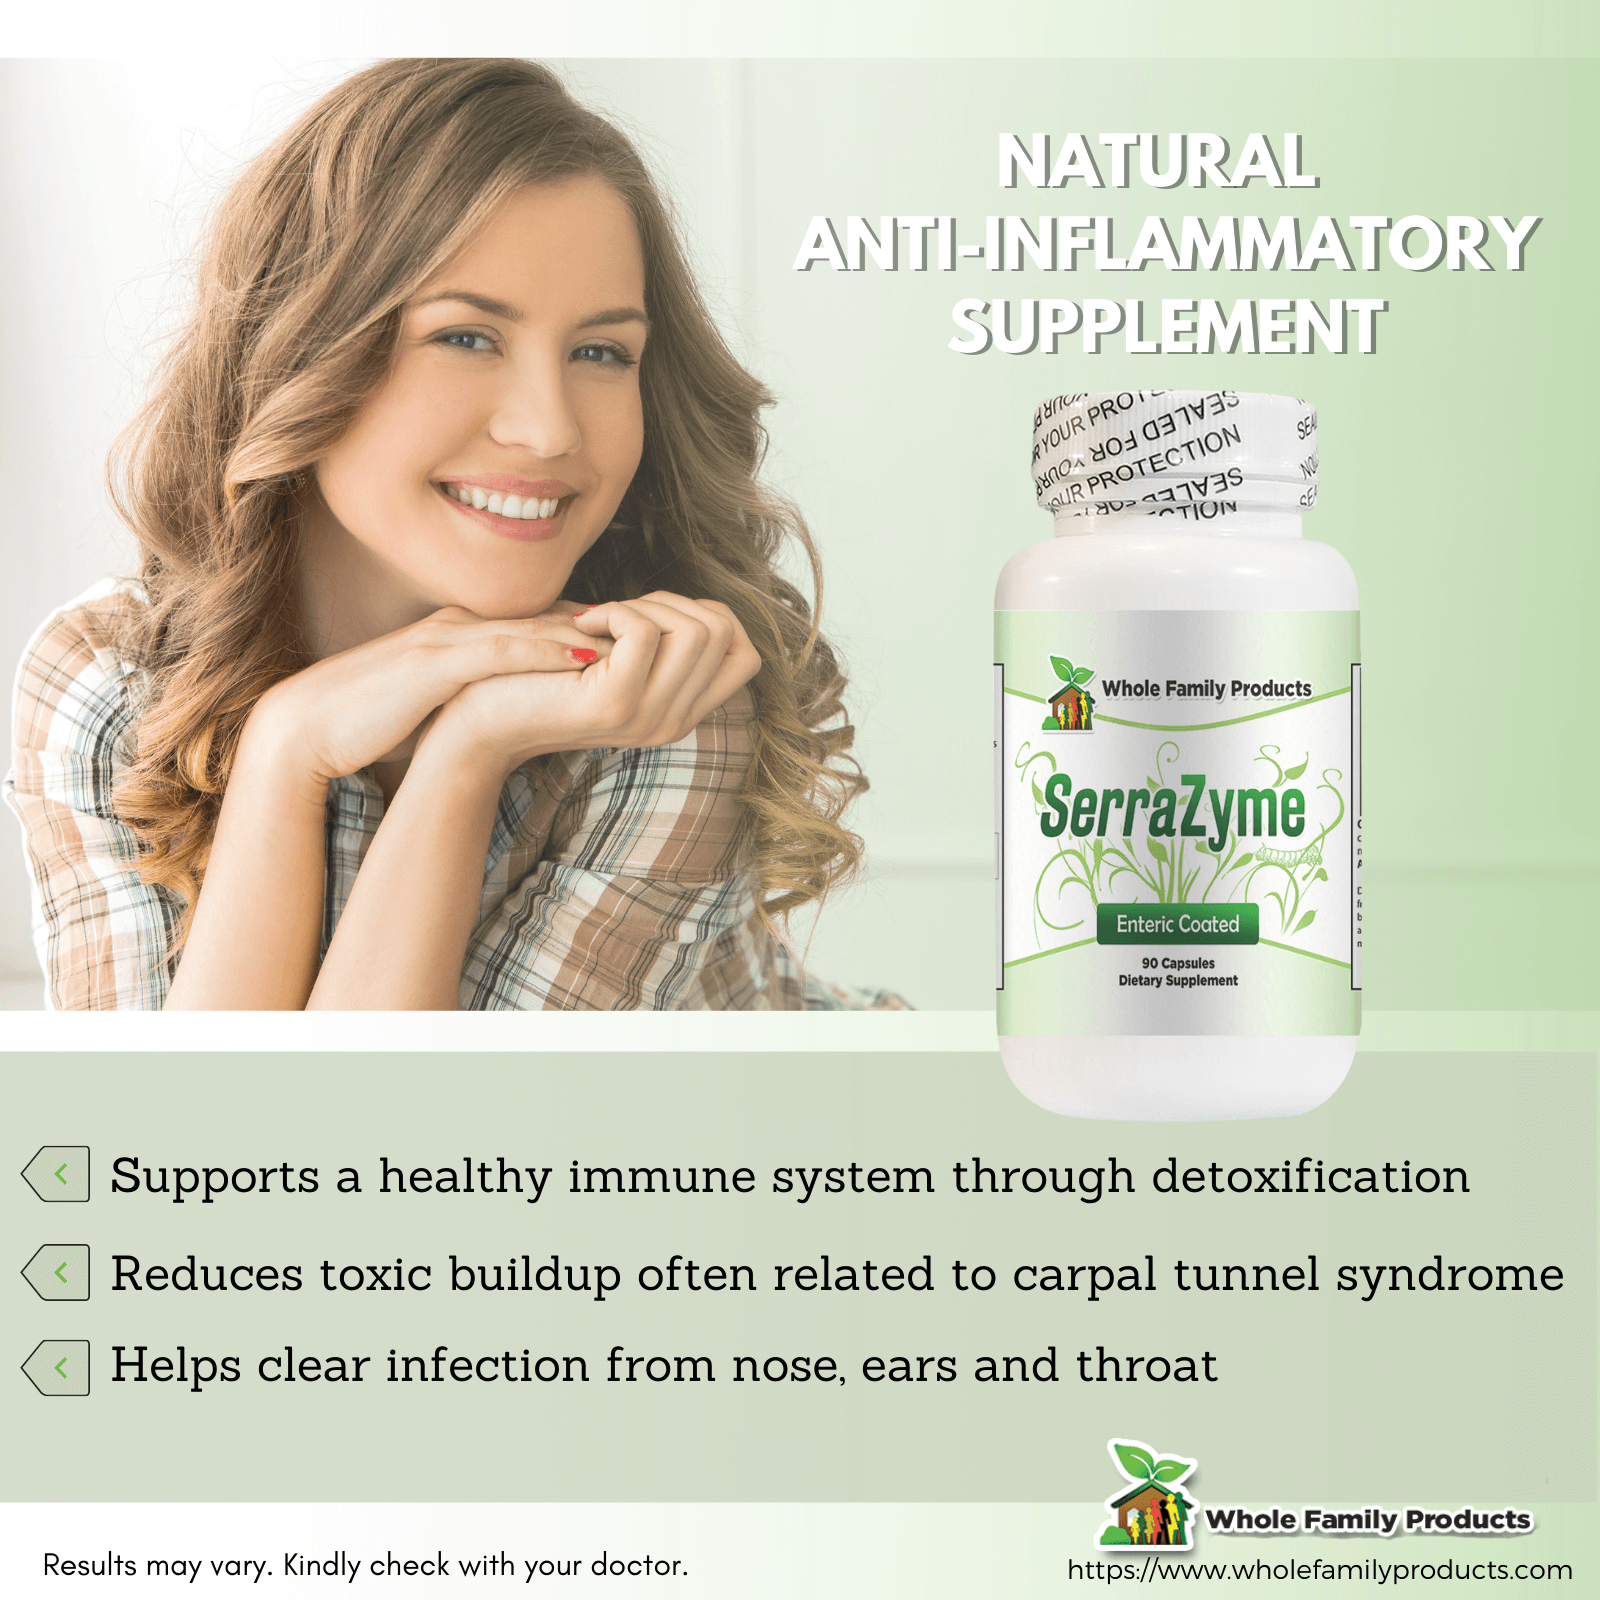 Serrazyme Enzyme 90 Capsules Natural Anti-Inflammatory Supplement